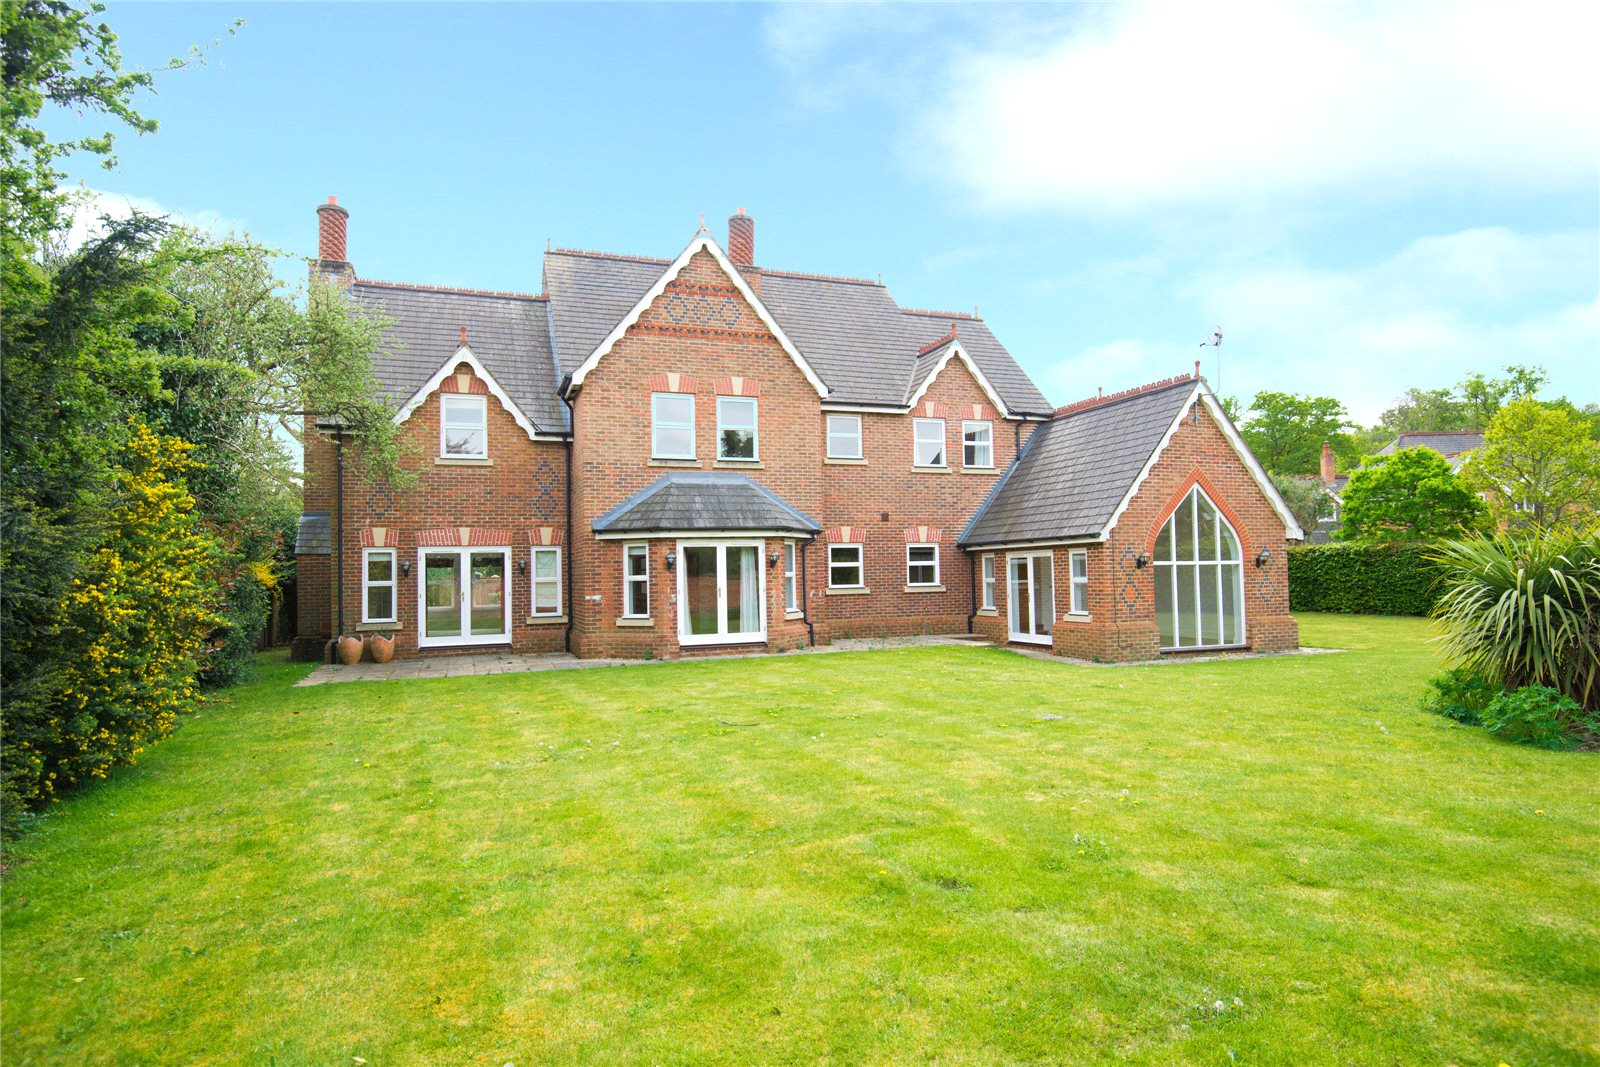 Single Family Home for Sale at Stoneyfield, Gerrards Cross, Buckinghamshire, SL9 Gerrards Cross, England